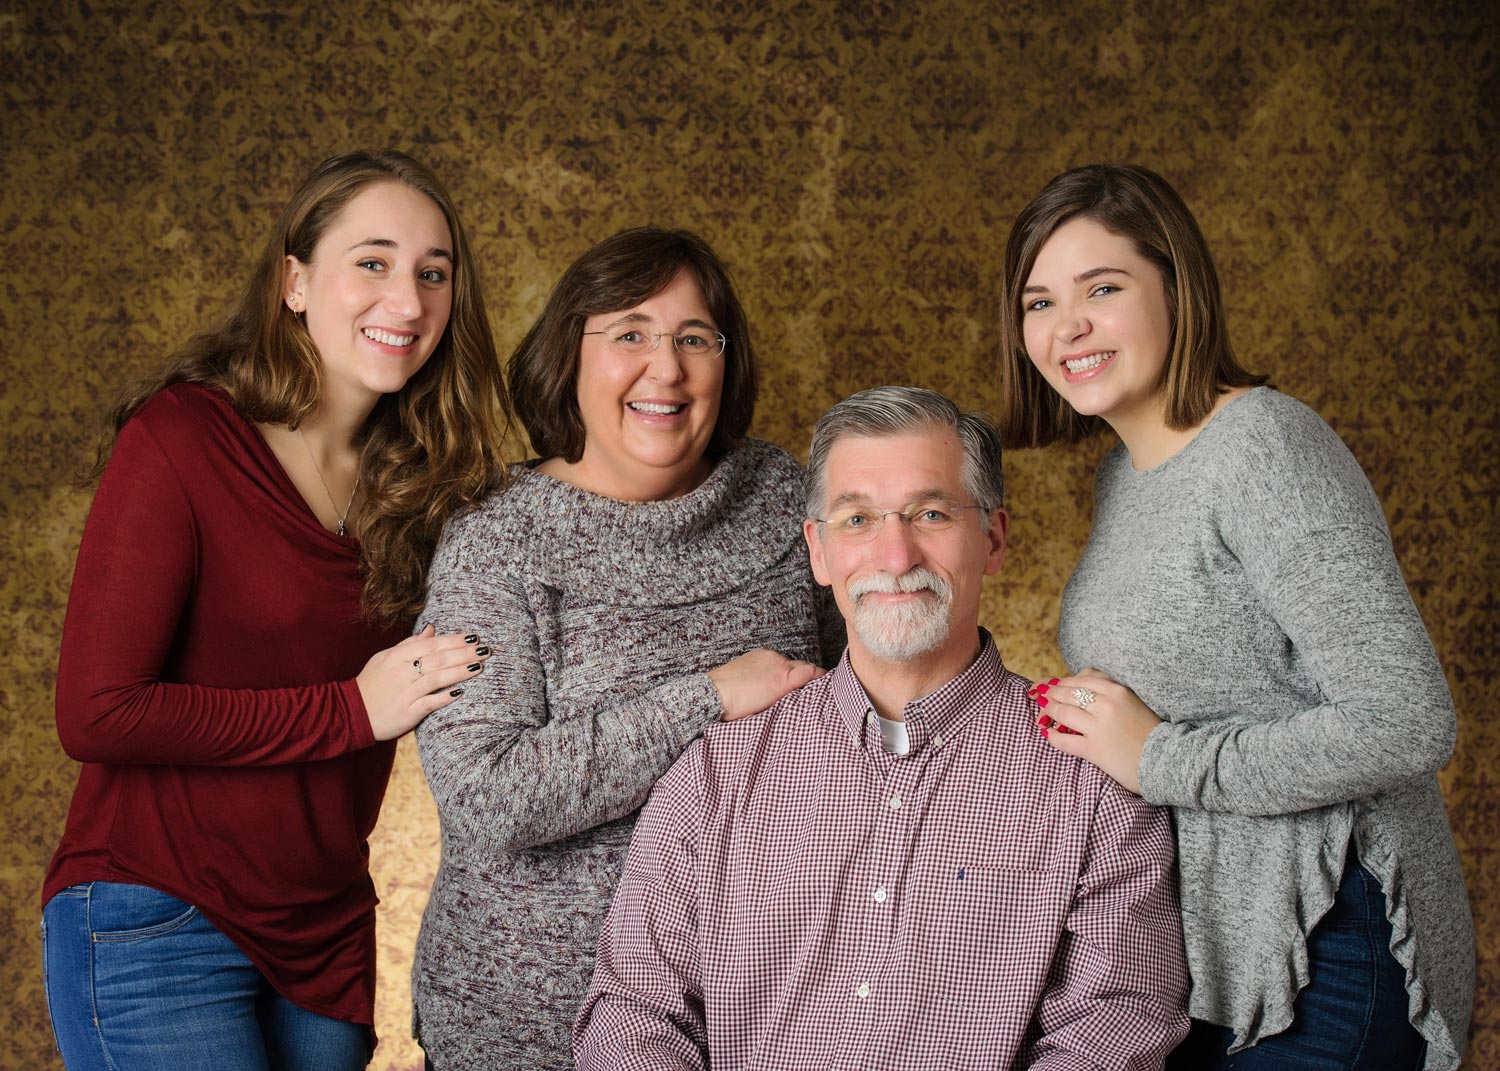 family-photography-Lexington-ky-studio-walz034.jpg